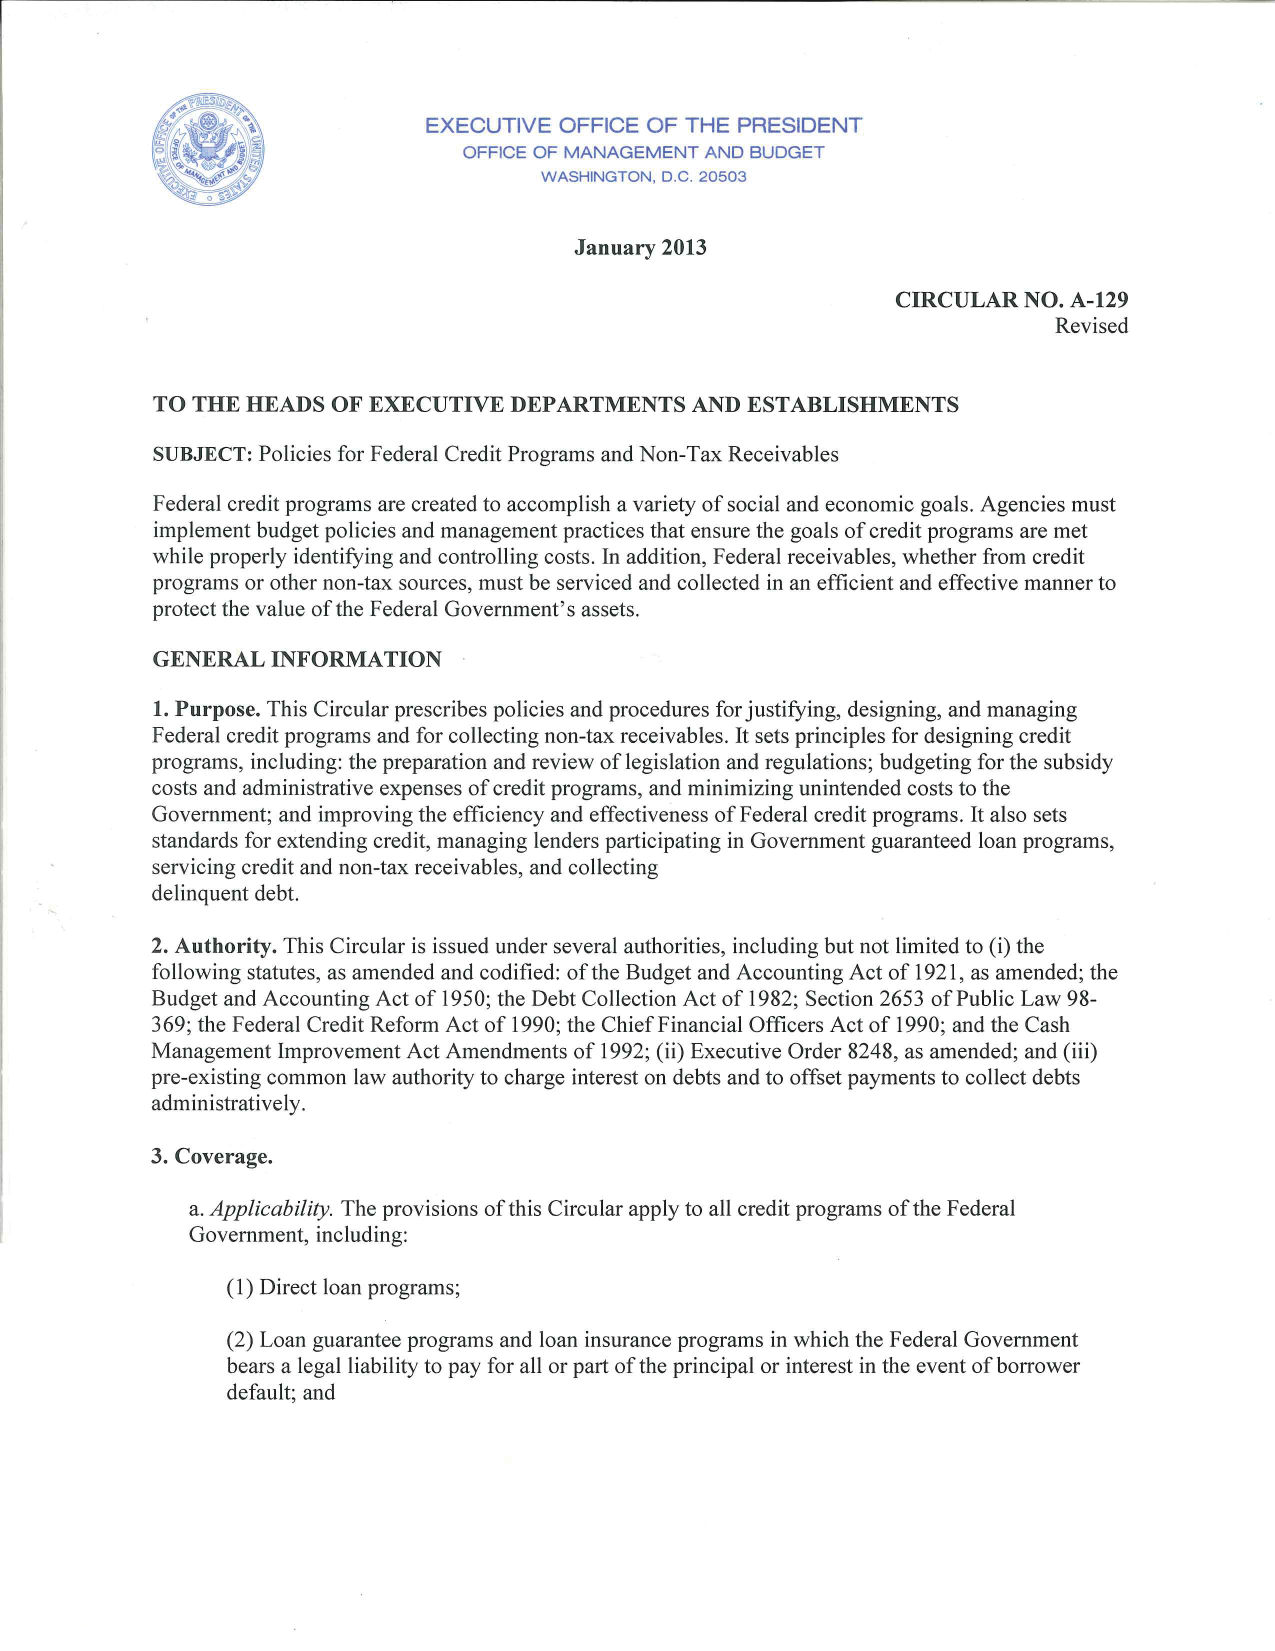 Circular A-129 Transmittal Letter | The White House